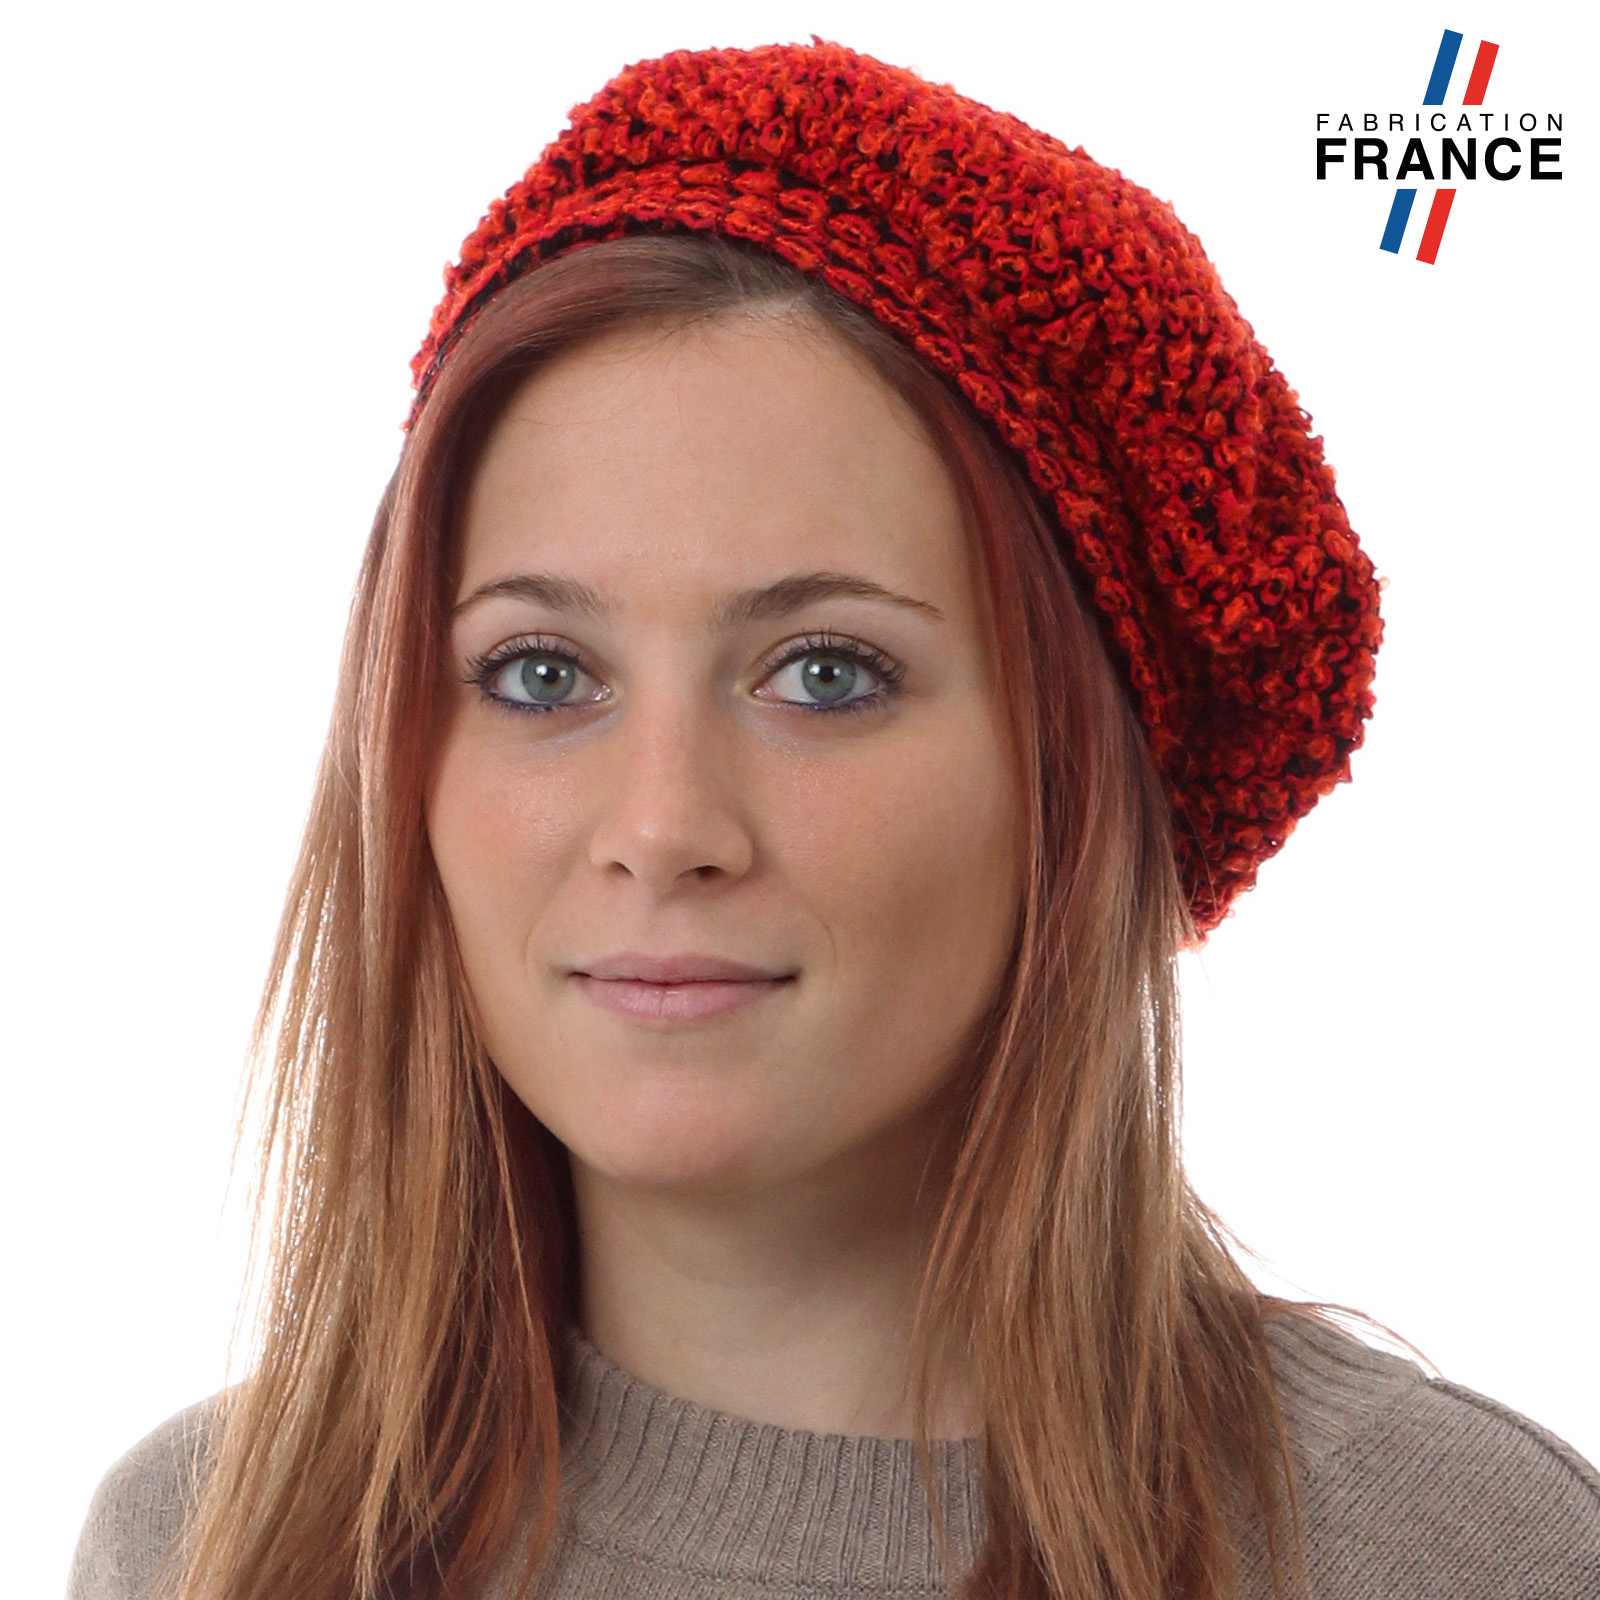 CP-00683-V16-beret-femme-rouge-fabrication-francaise